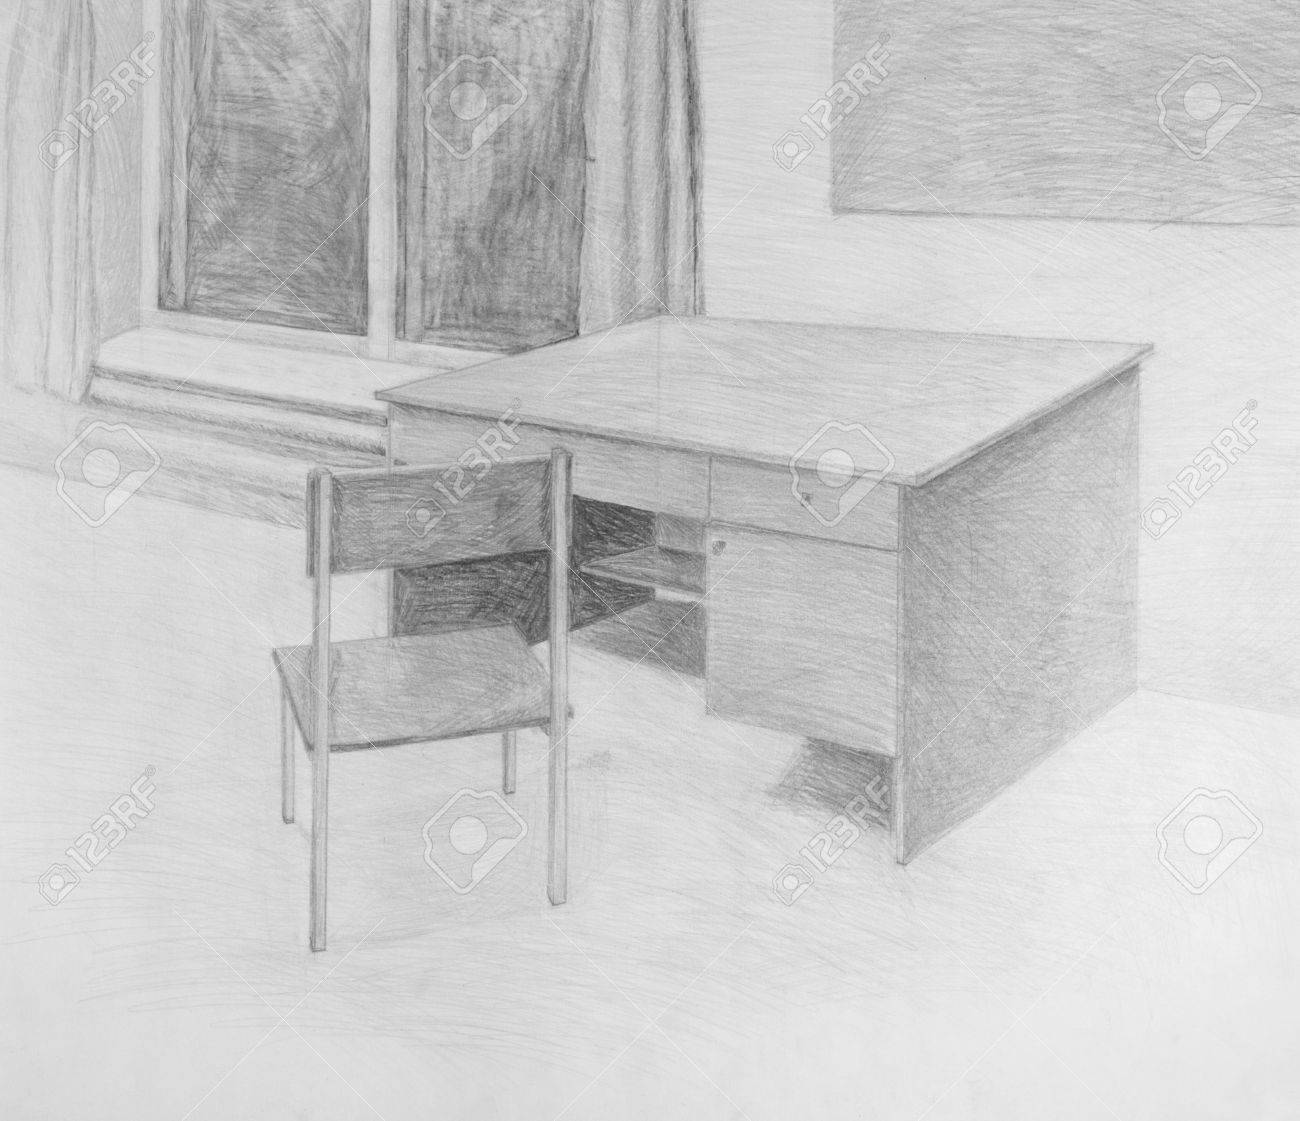 Pencil drawing of chair and table stock photo 18915512